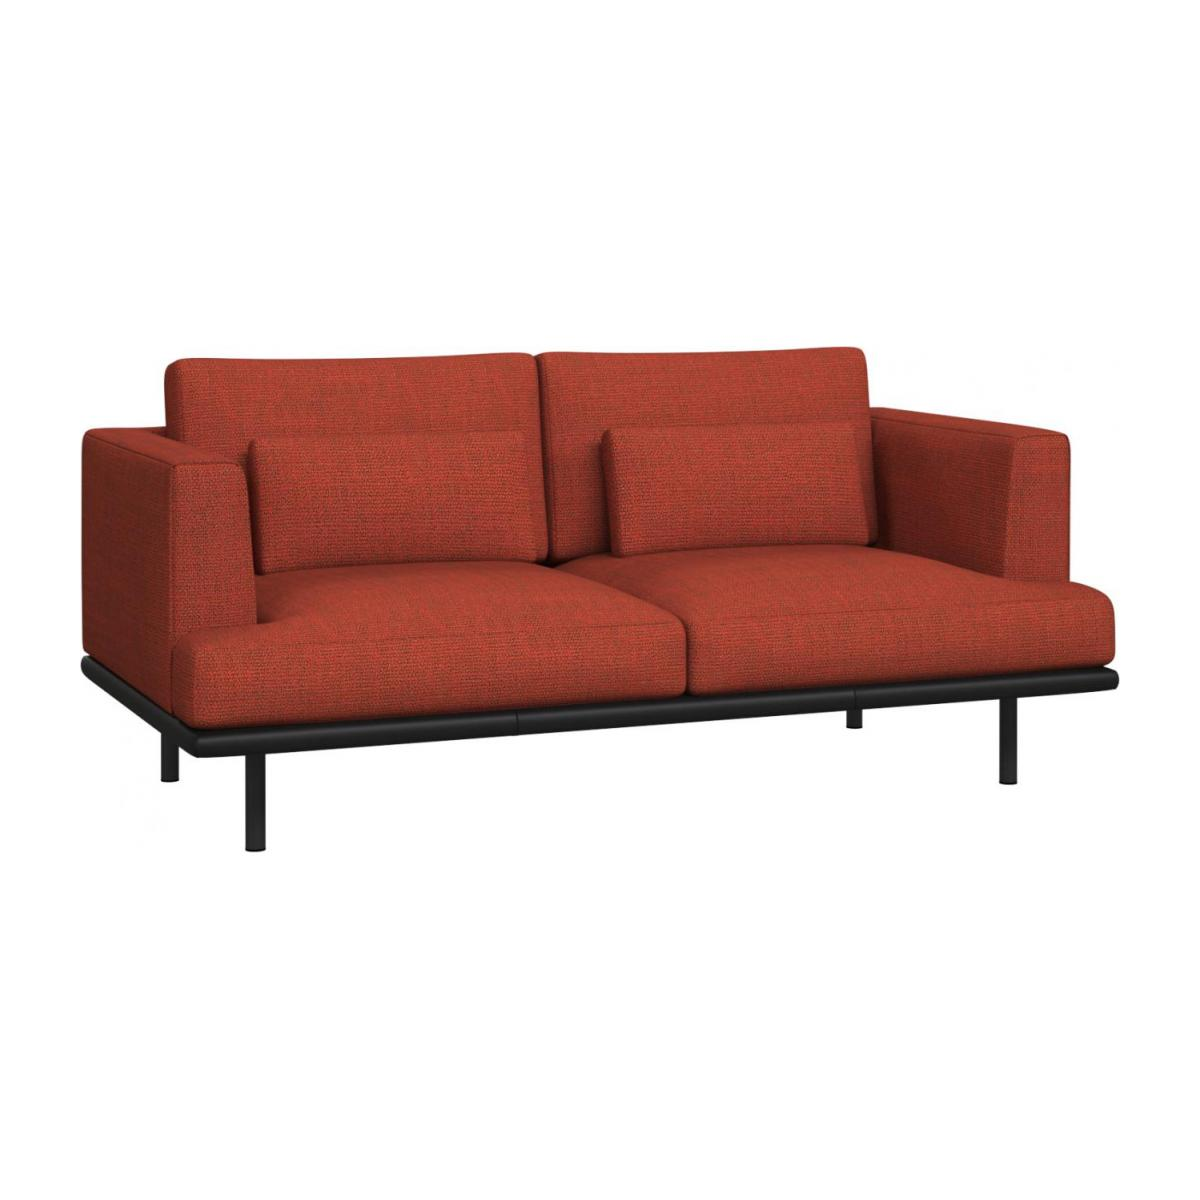 2 seater sofa in Fasoli fabric, warm red rock with base in black leather n°1